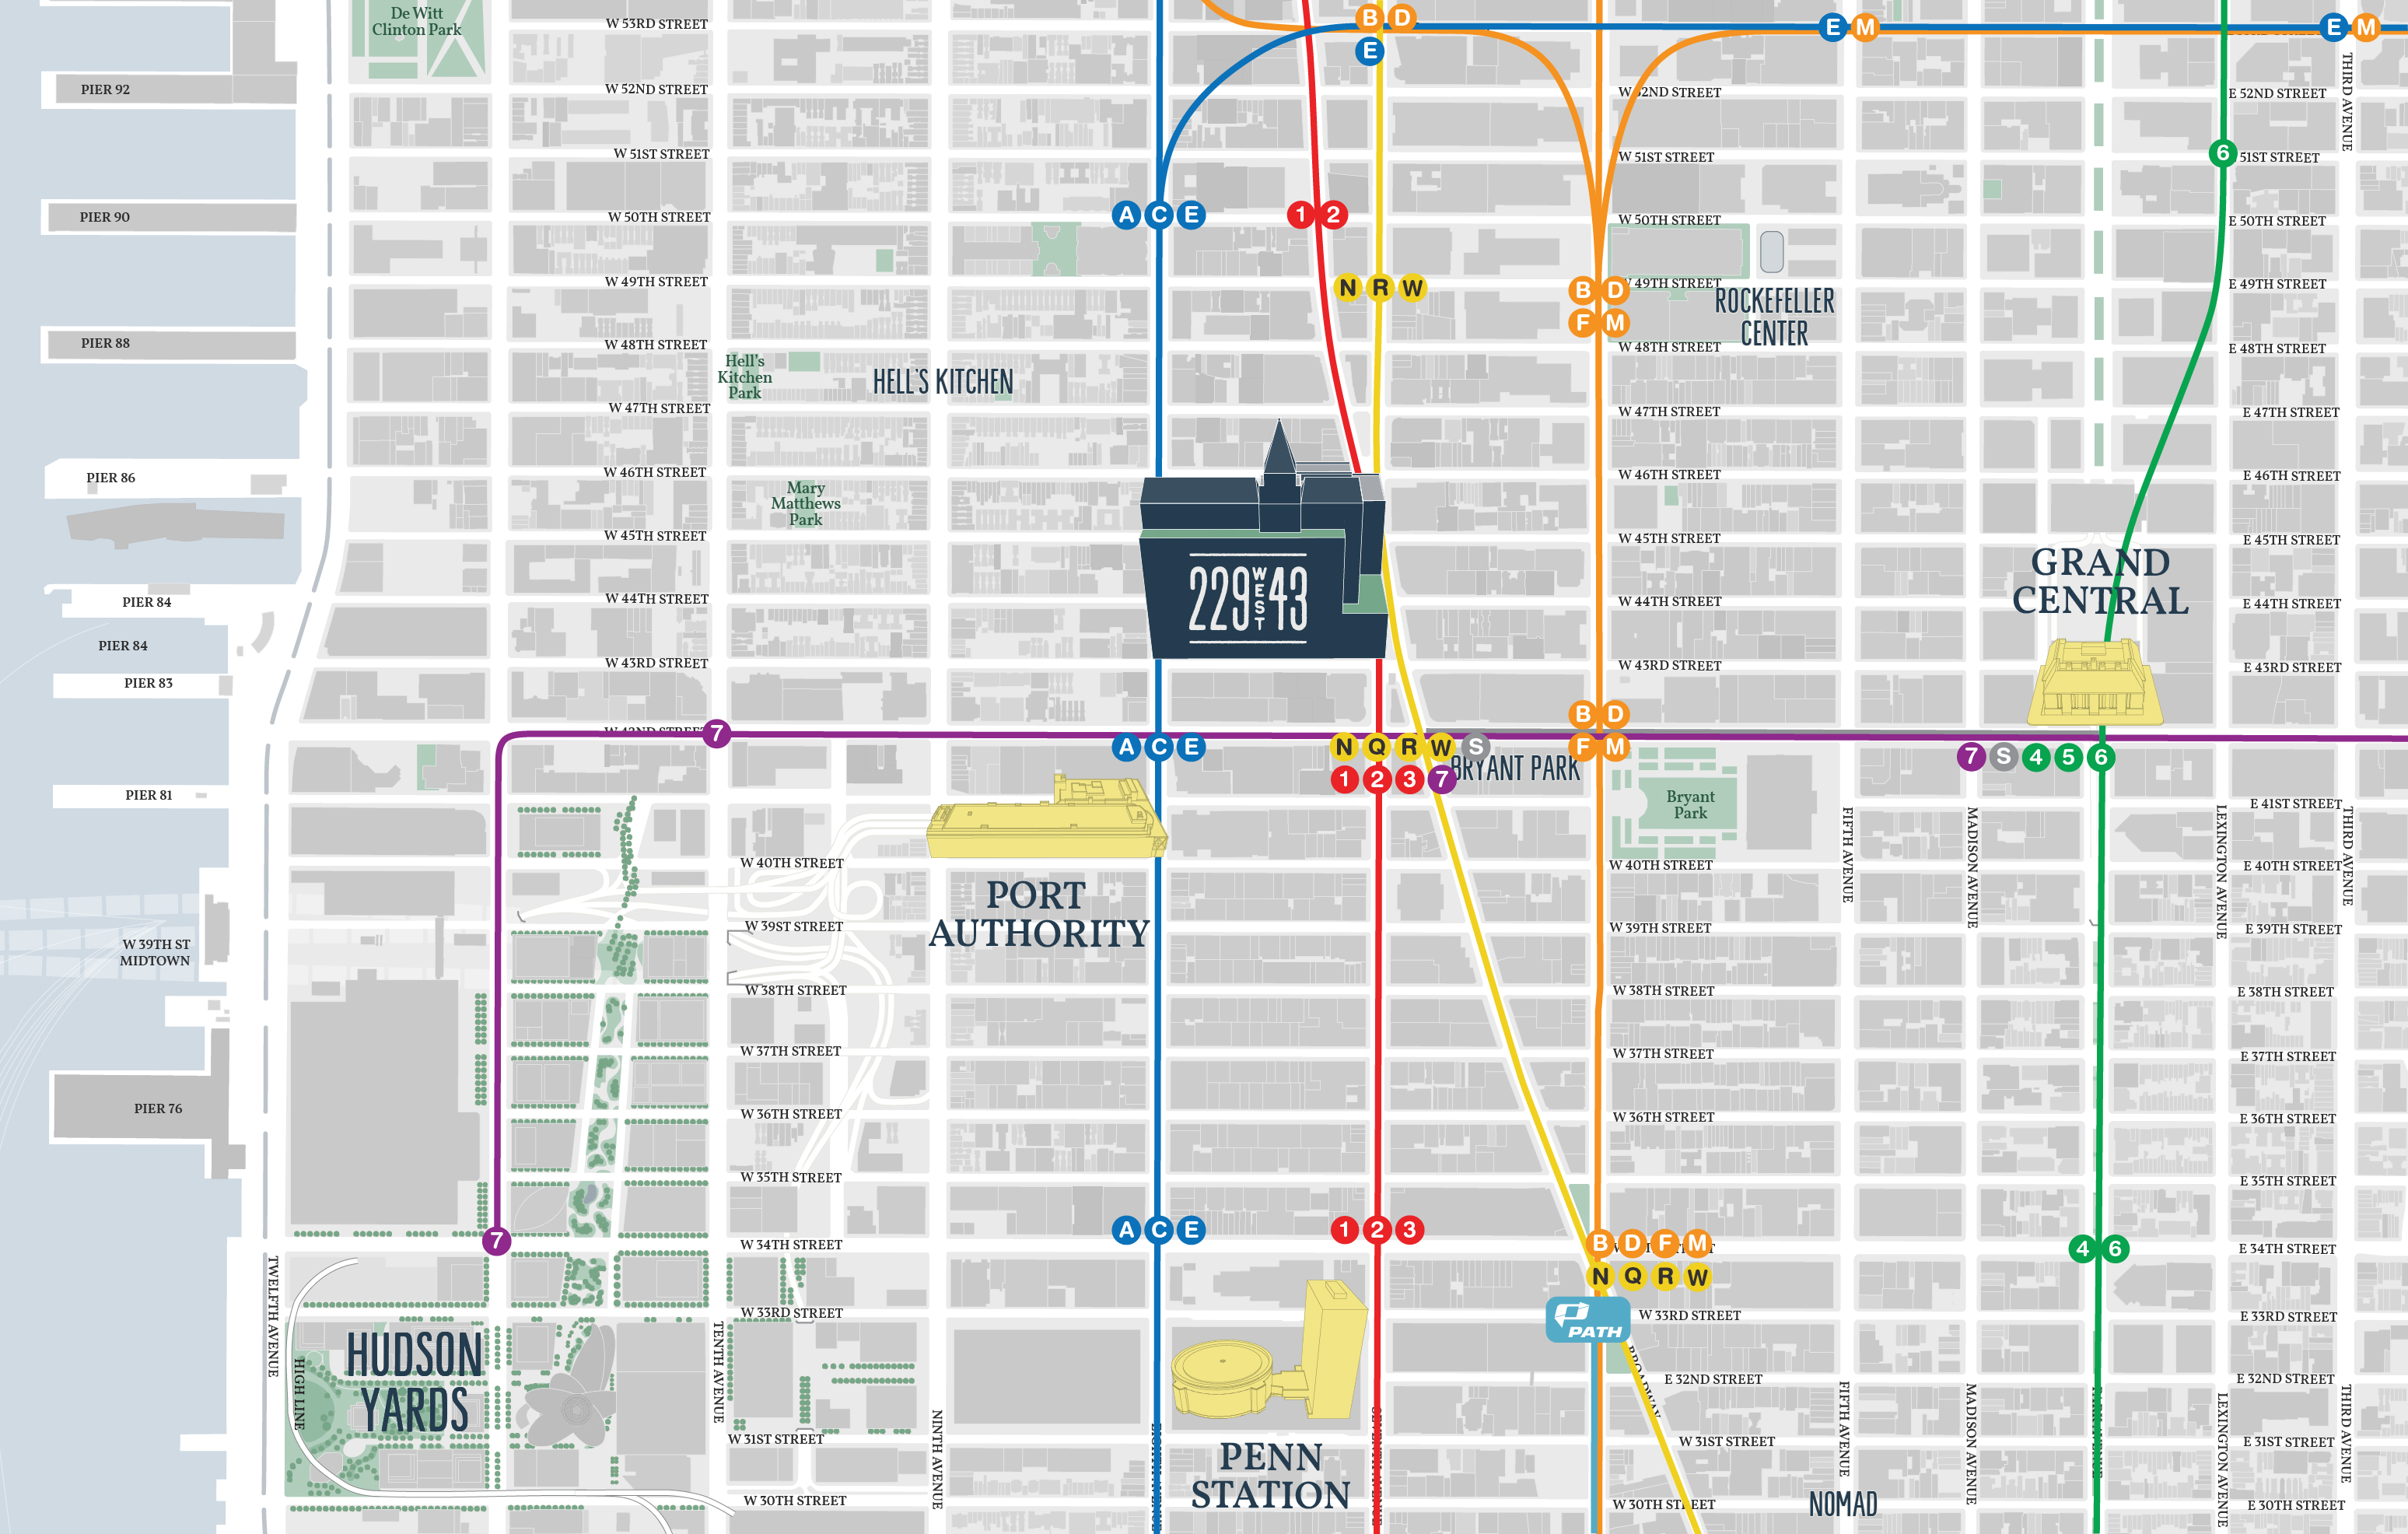 What Doy Calle The Thing That Has The Subway Map.Transit 229 West 43